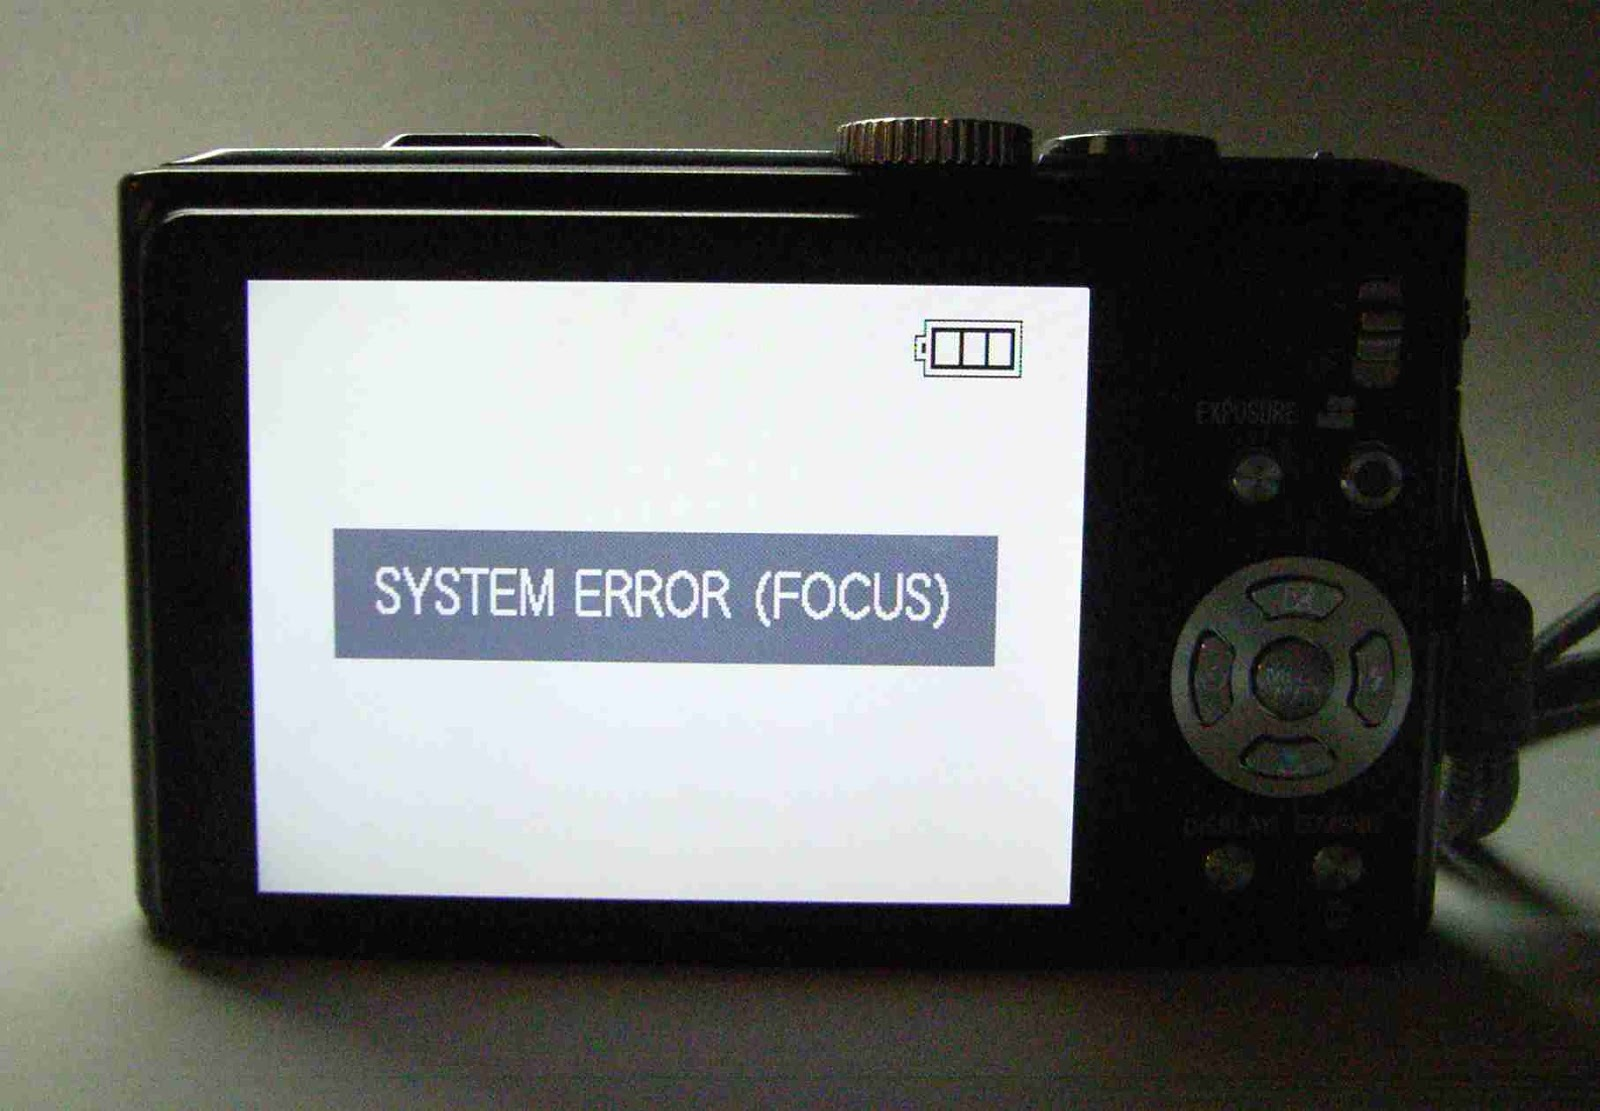 I found a service manual for the camera at  http://www.scribd.com/doc/96821254/DMC-TZ10-ZS7-Service-Manual (assessed 29  March 2013) which made repairing the ...